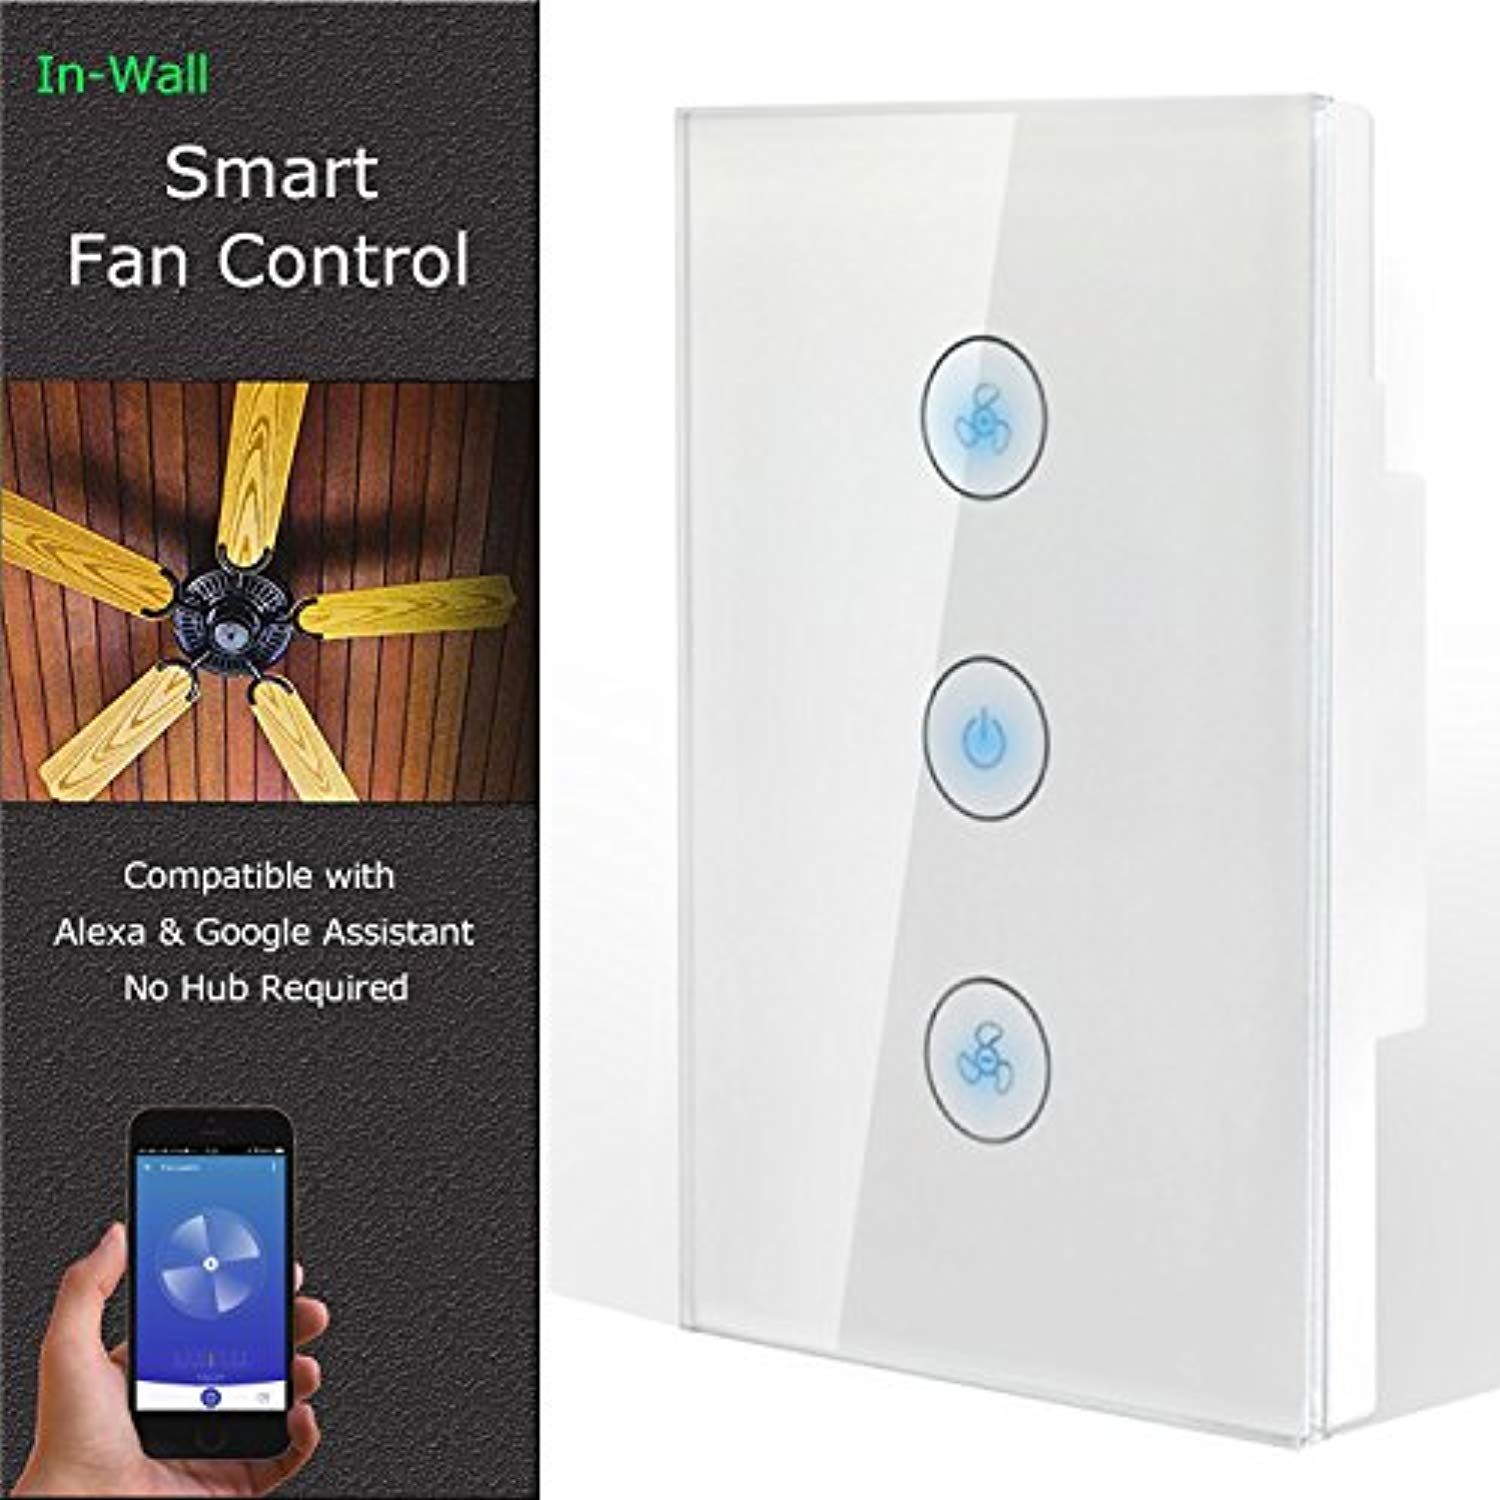 Smart fan speed control compatible with alexa and google assistant